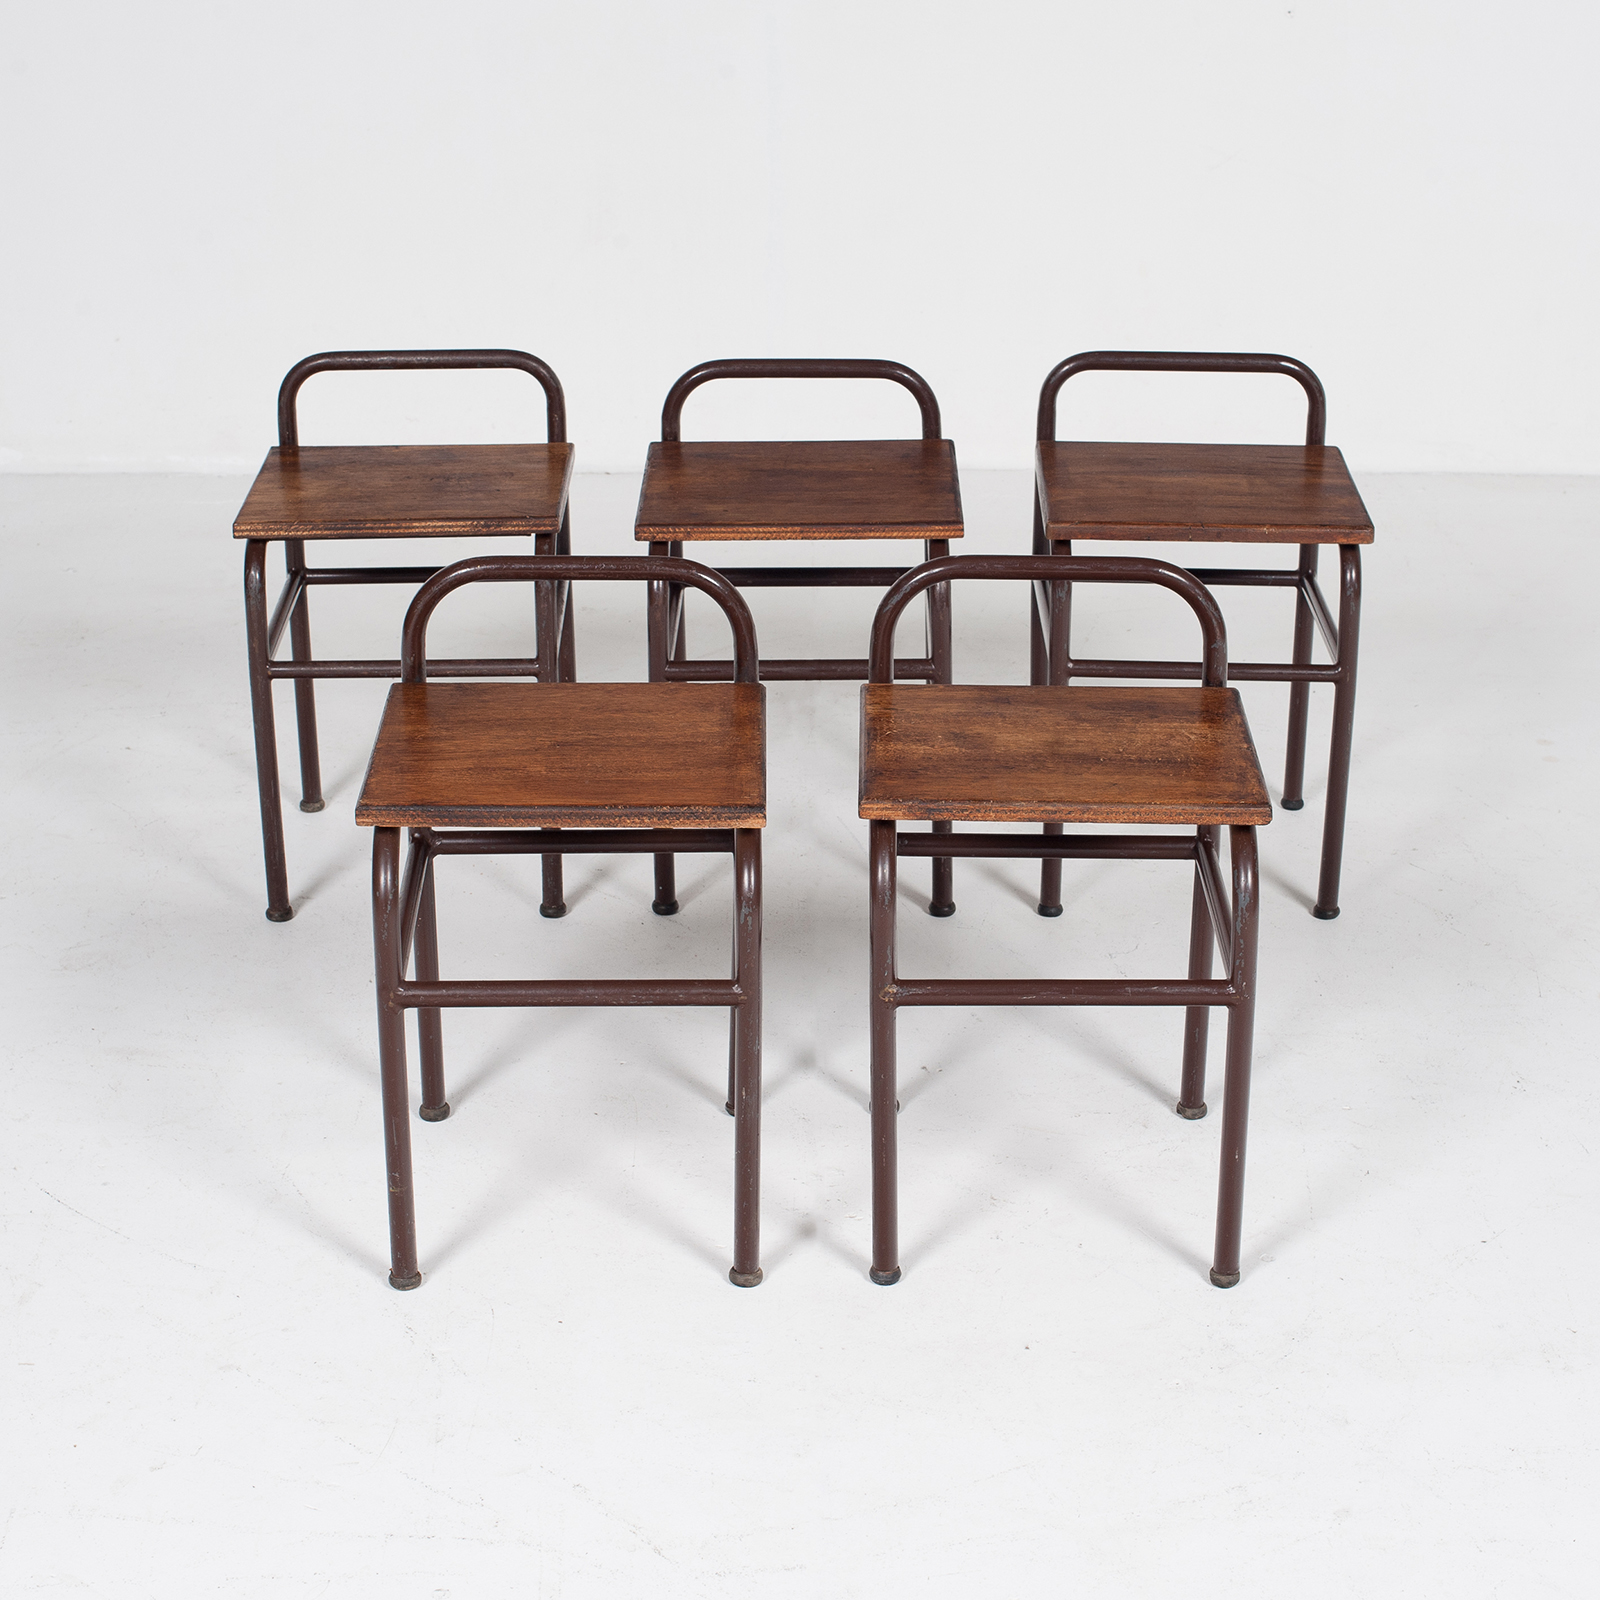 Industrial Stool With Timber Seat, Belgium Mt Stl 194 2602 Be Set 2 Of 2 83